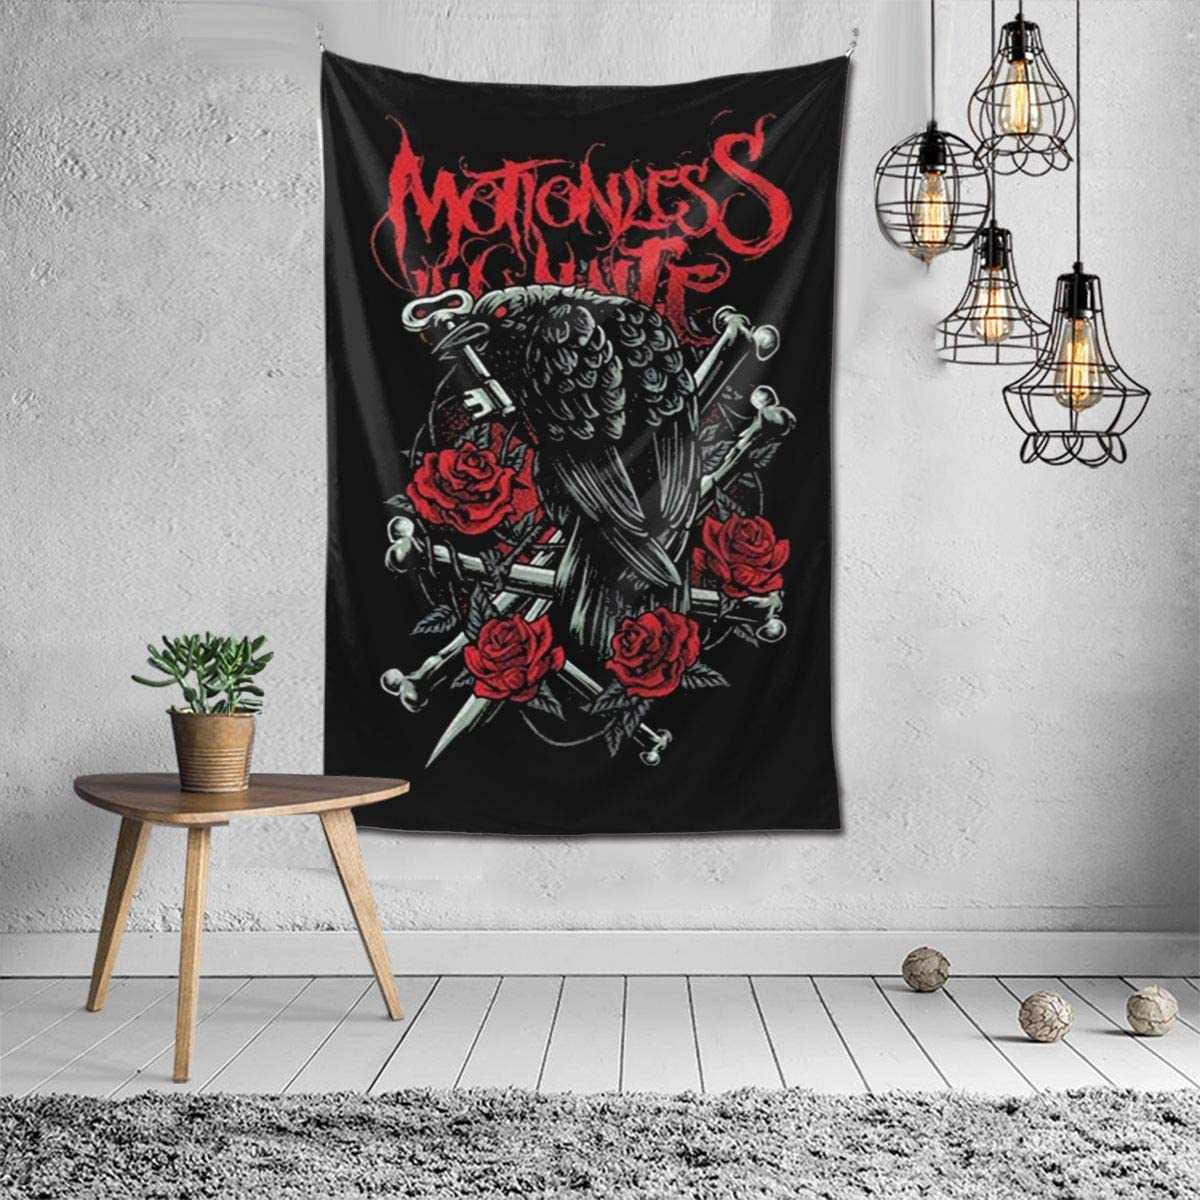 Motionless in White Tapestry Wall Hanging Bedding Tapestry 3D Printed Art Tapestry Home Decor 60